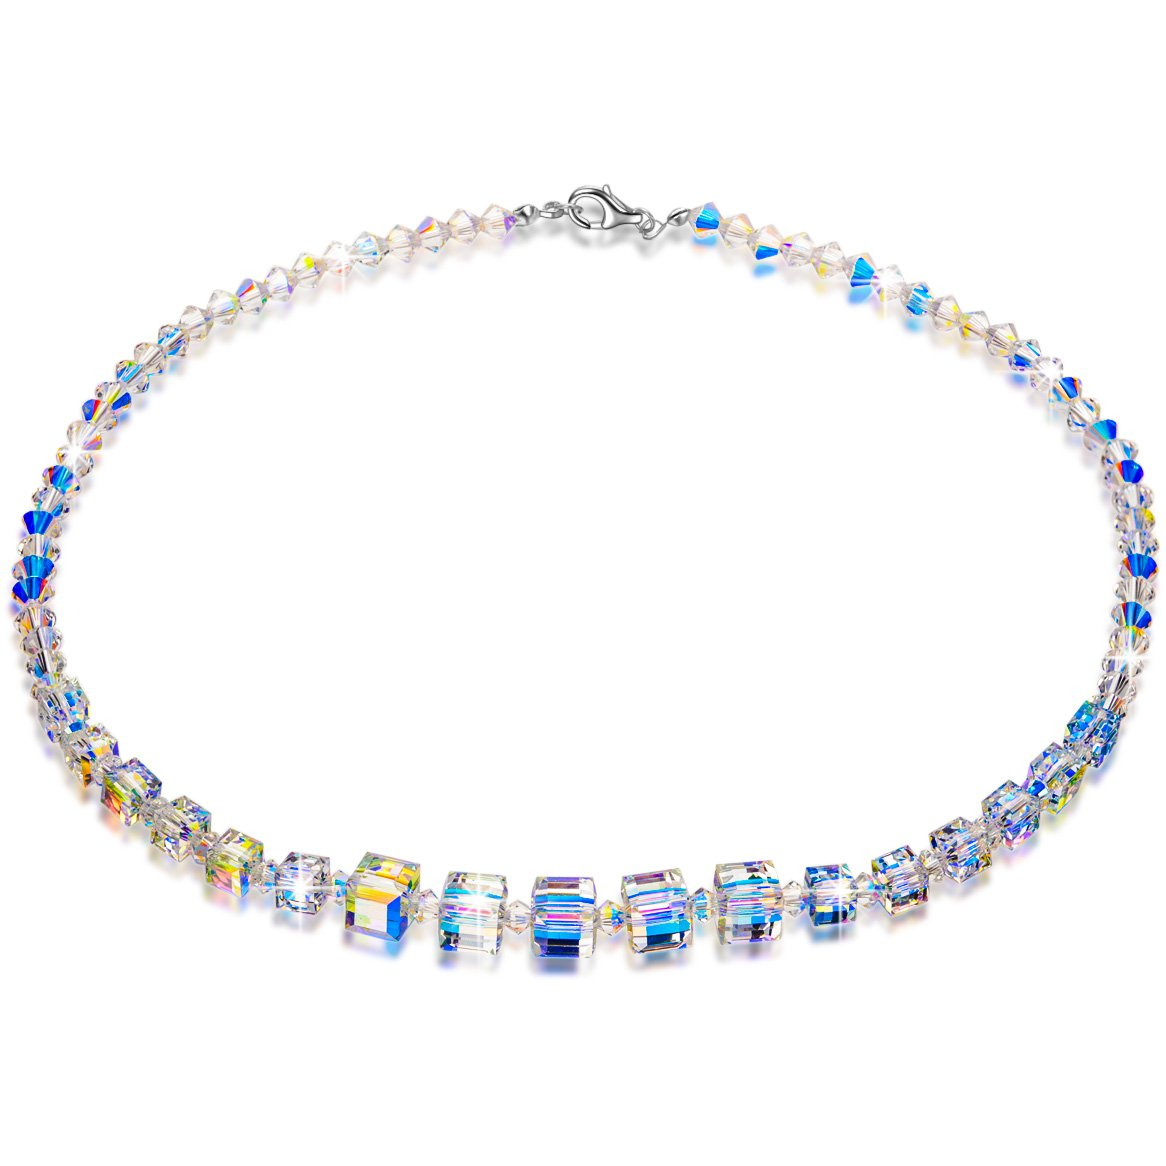 LADY COLOUR Crystal Necklace A Little Romance Series Strand Necklace for Women 16.5